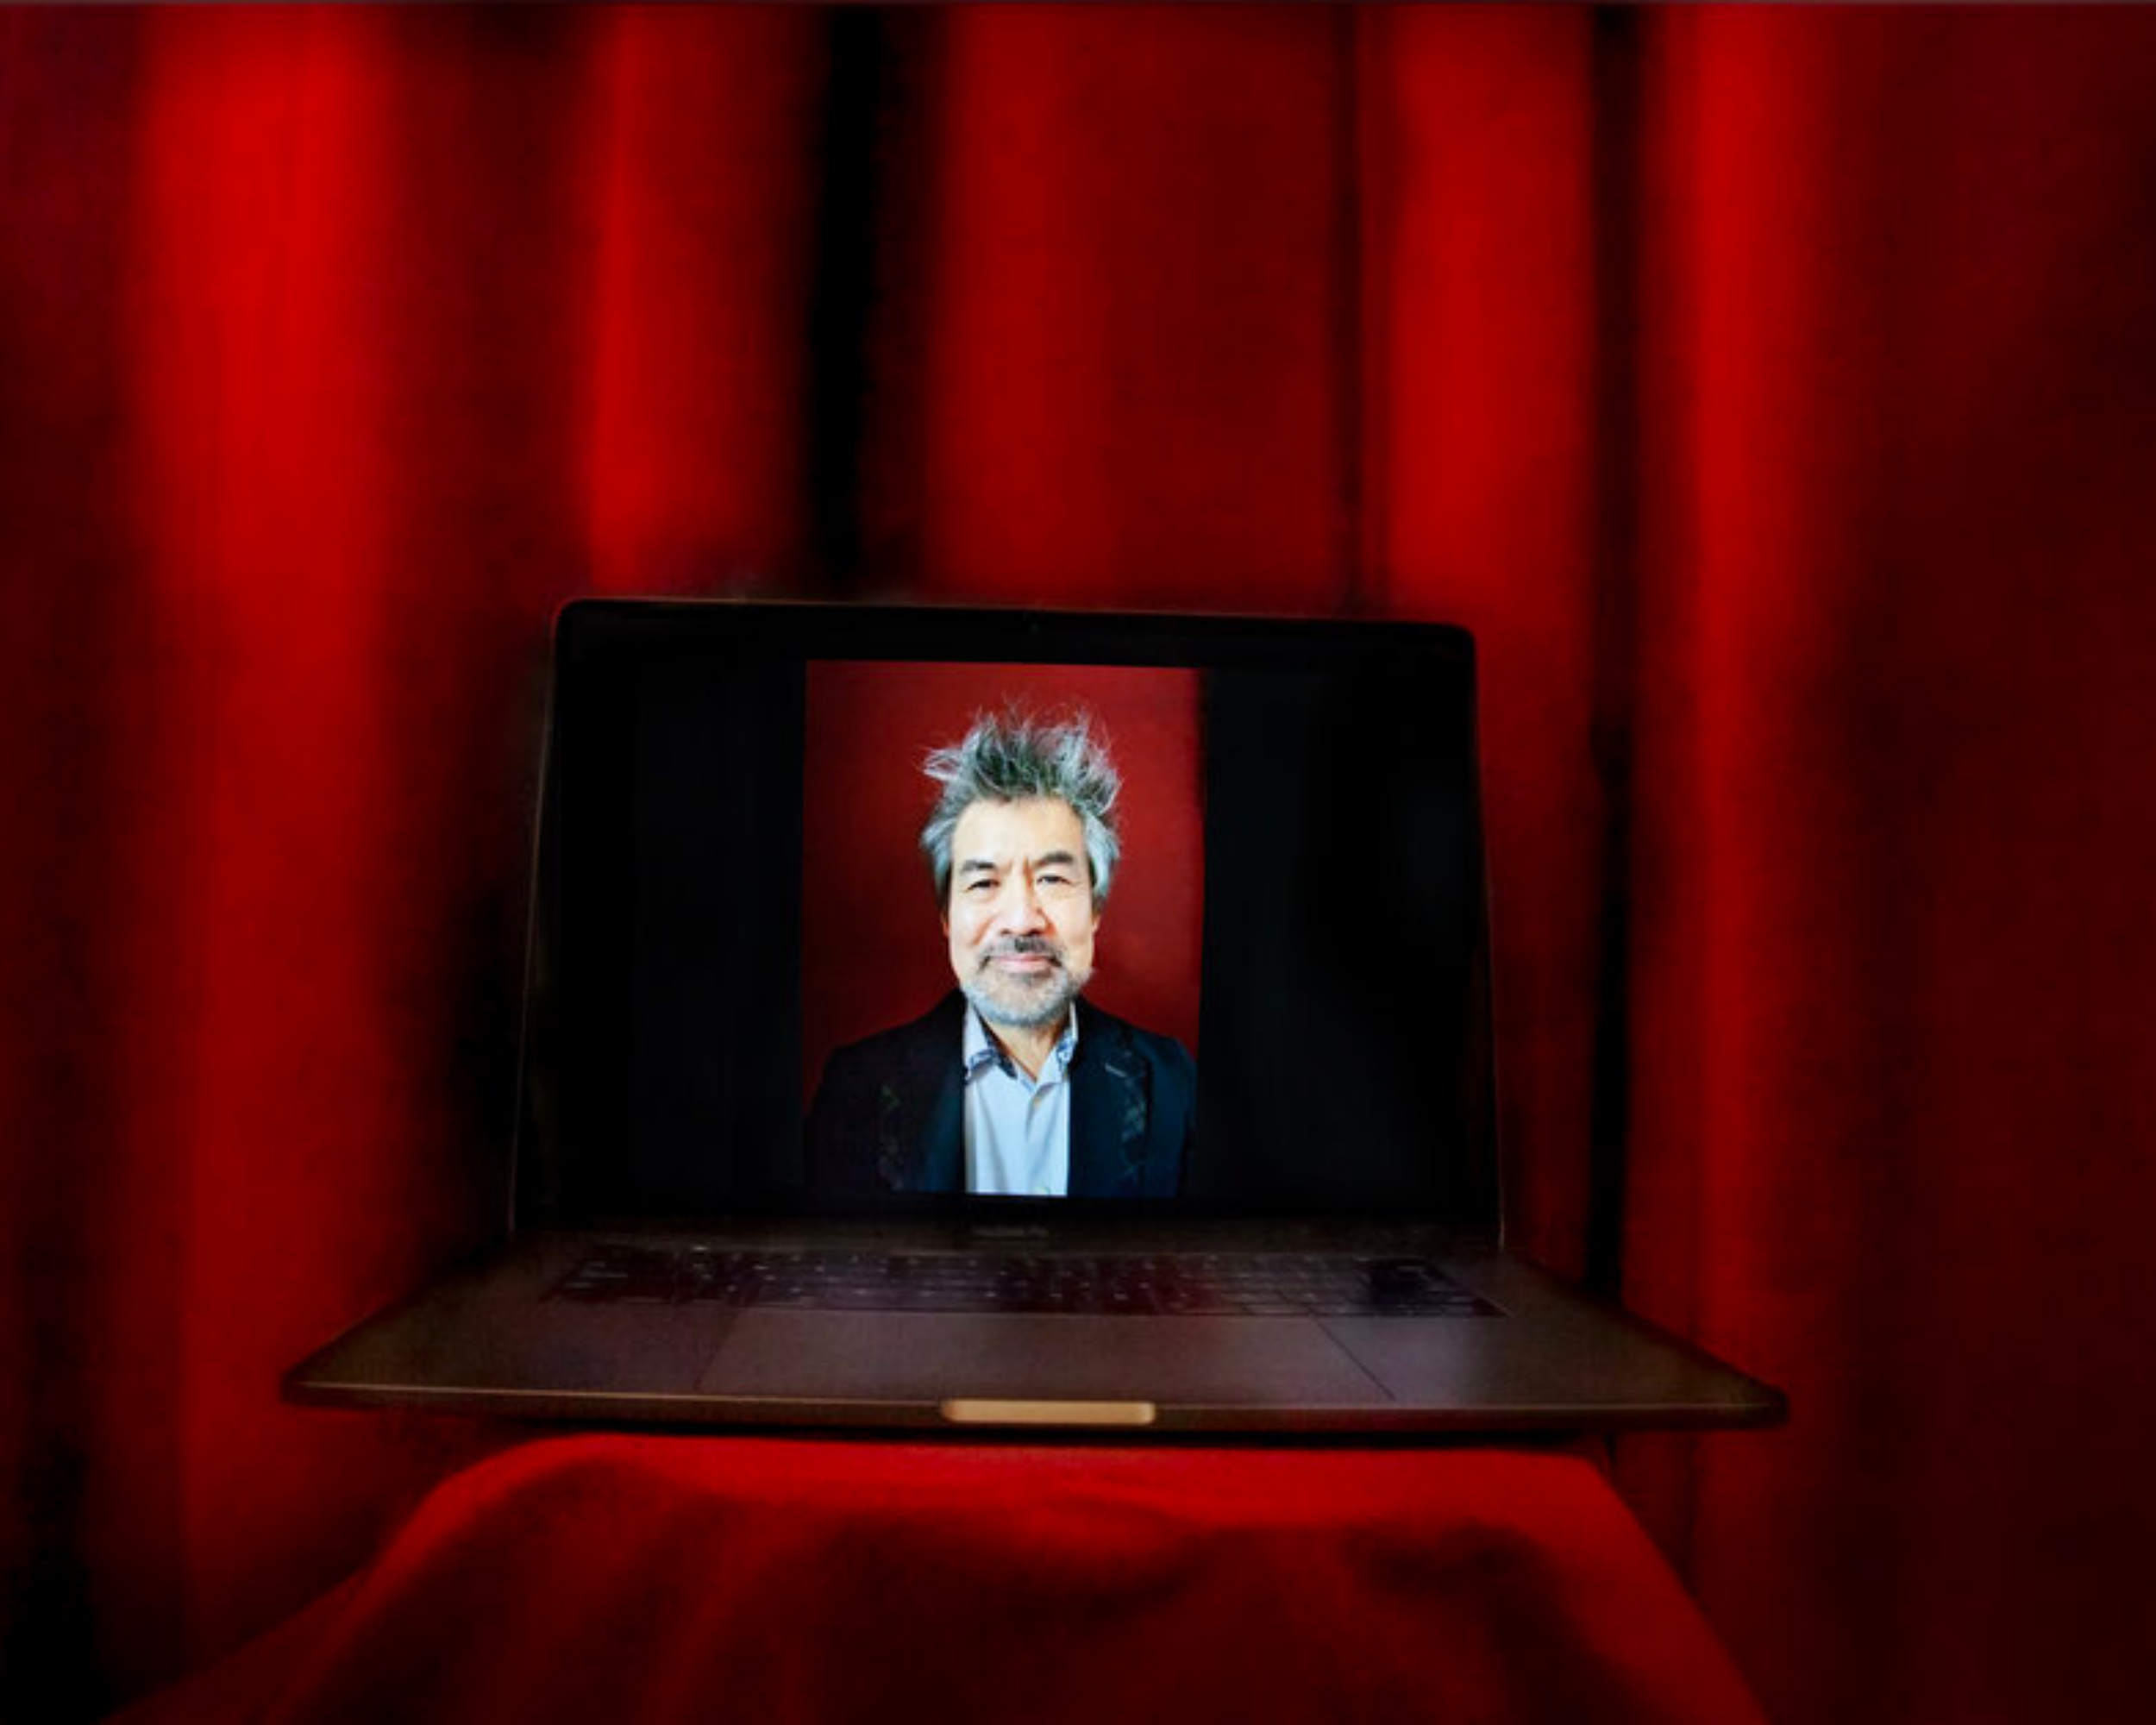 An image of a man in a suit jacket is displayed on a laptop screen with a red curtain background. The laptop in on a red table.